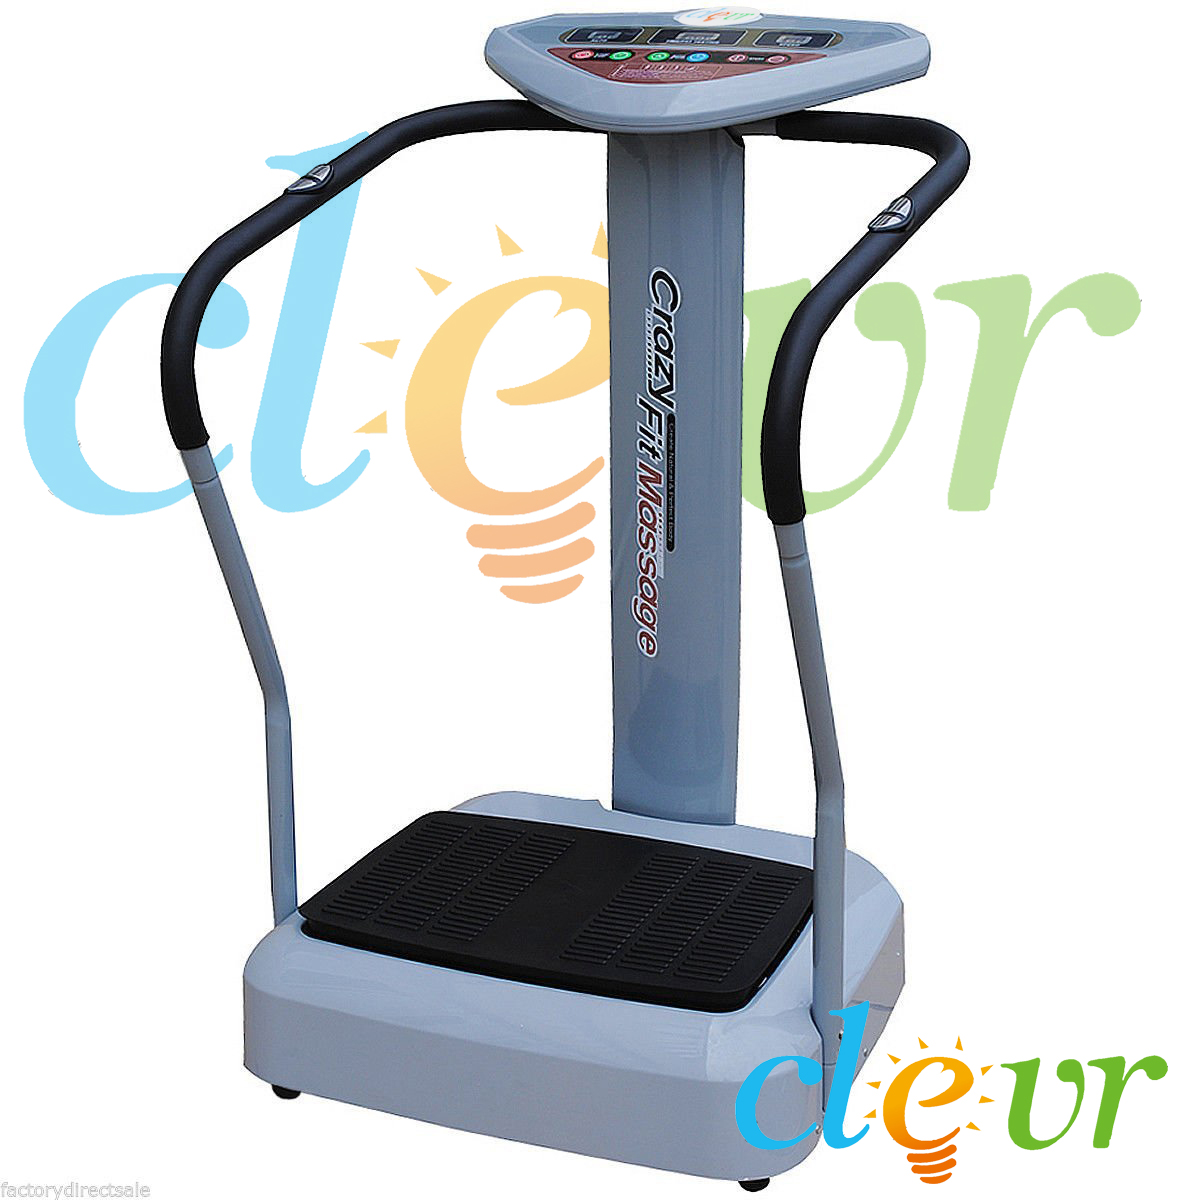 1000w pro crazy fit full body vibration massage machine platform massage fitness ebay. Black Bedroom Furniture Sets. Home Design Ideas